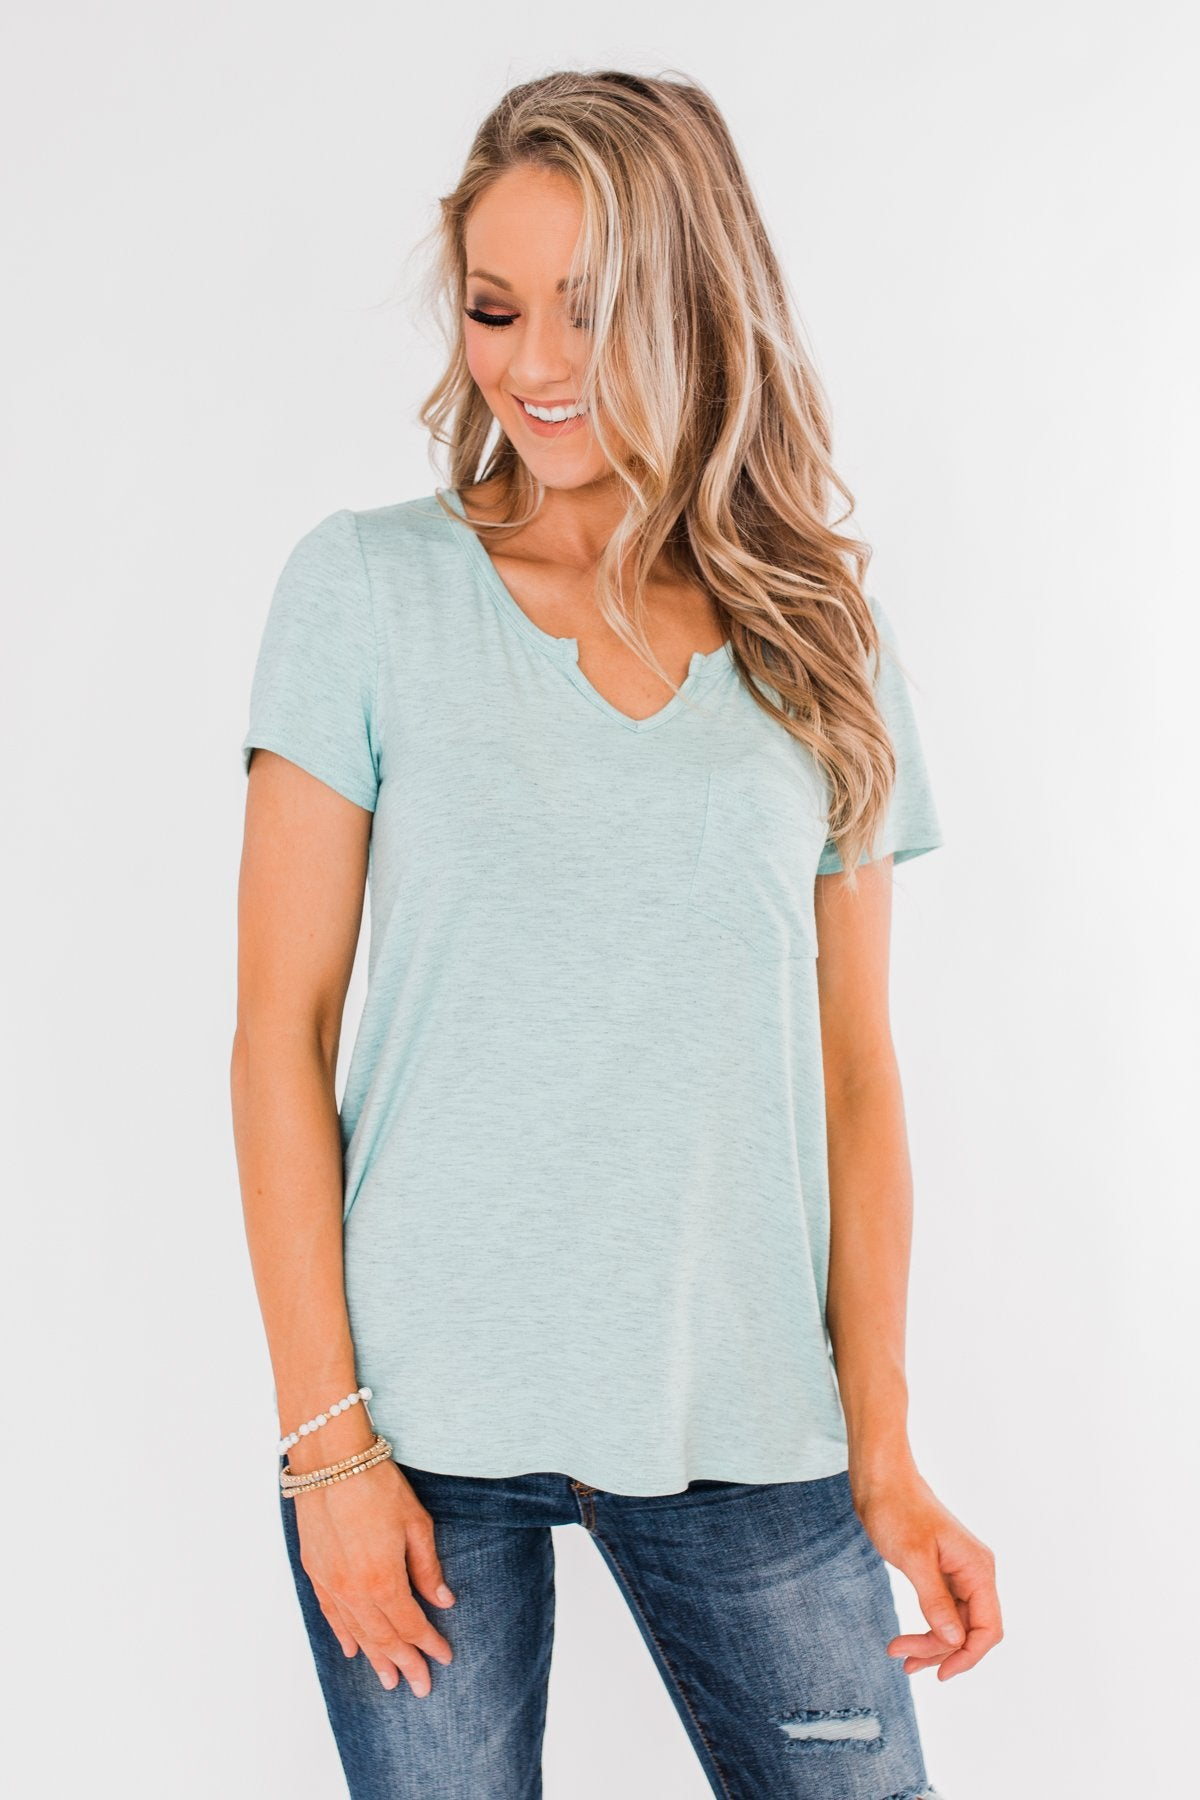 This is Me Notch Pocket Top- Heather Blue